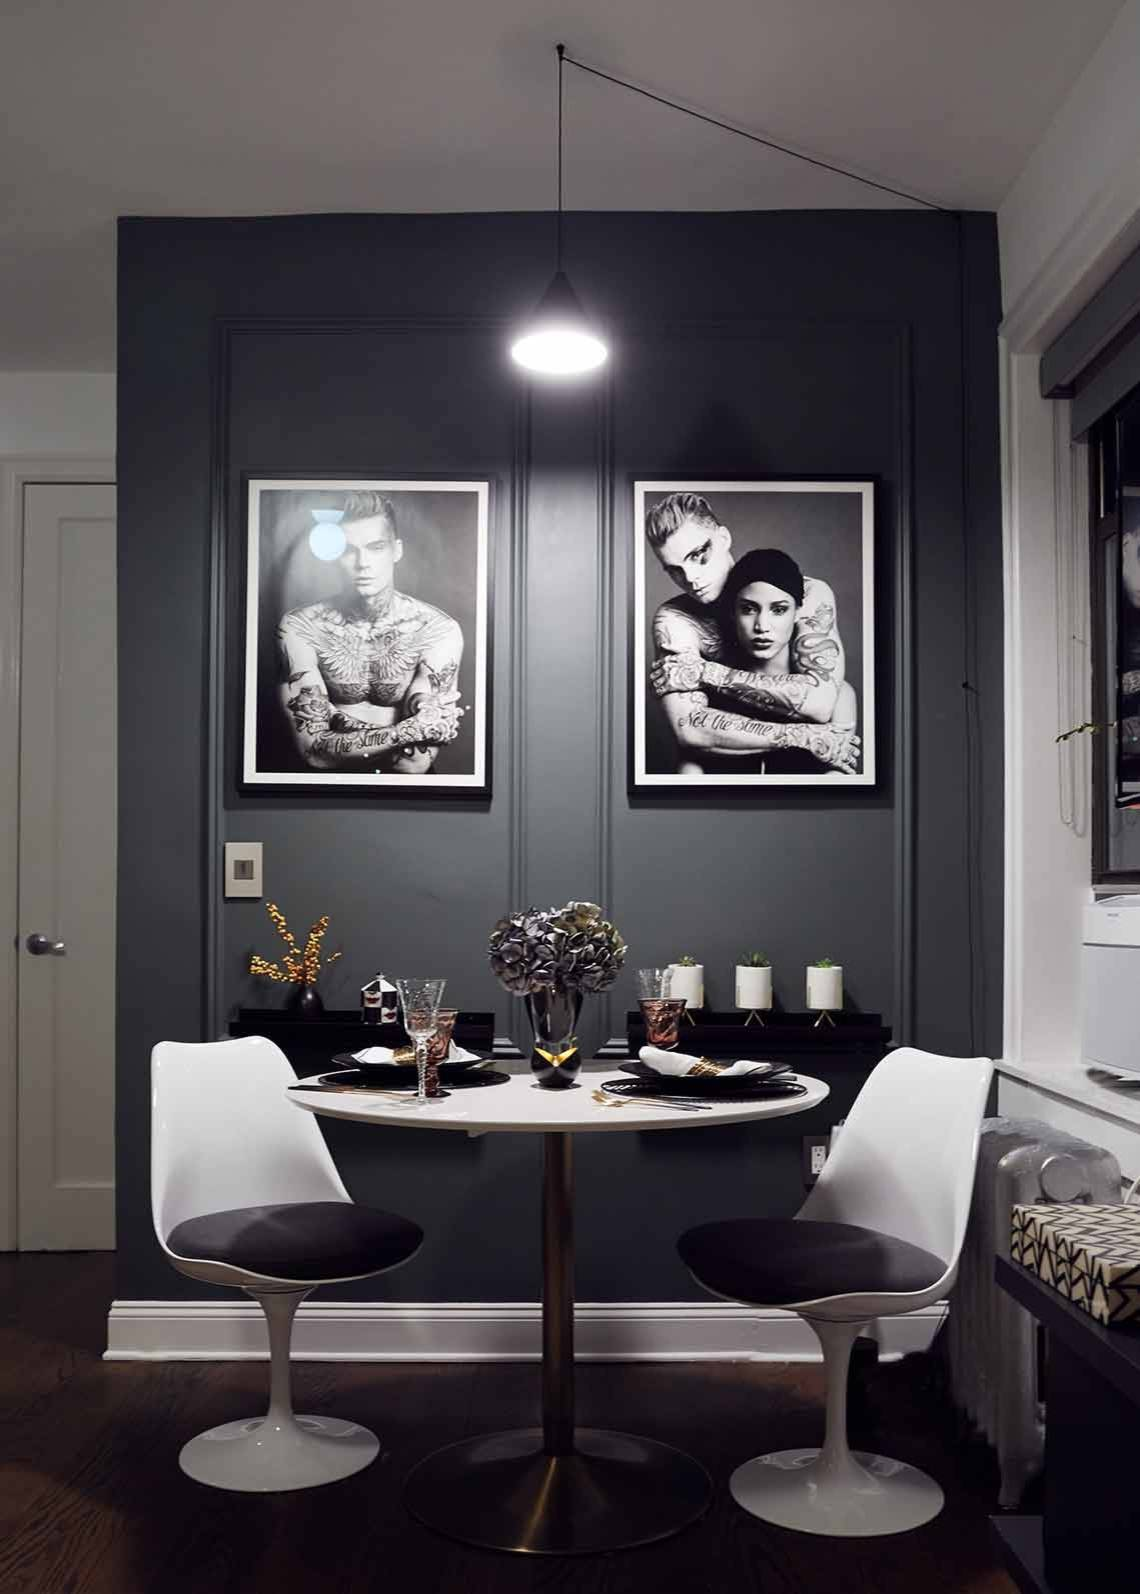 Sophisticated NYC dining room with dark gray walls and framed photographs in the backdrop